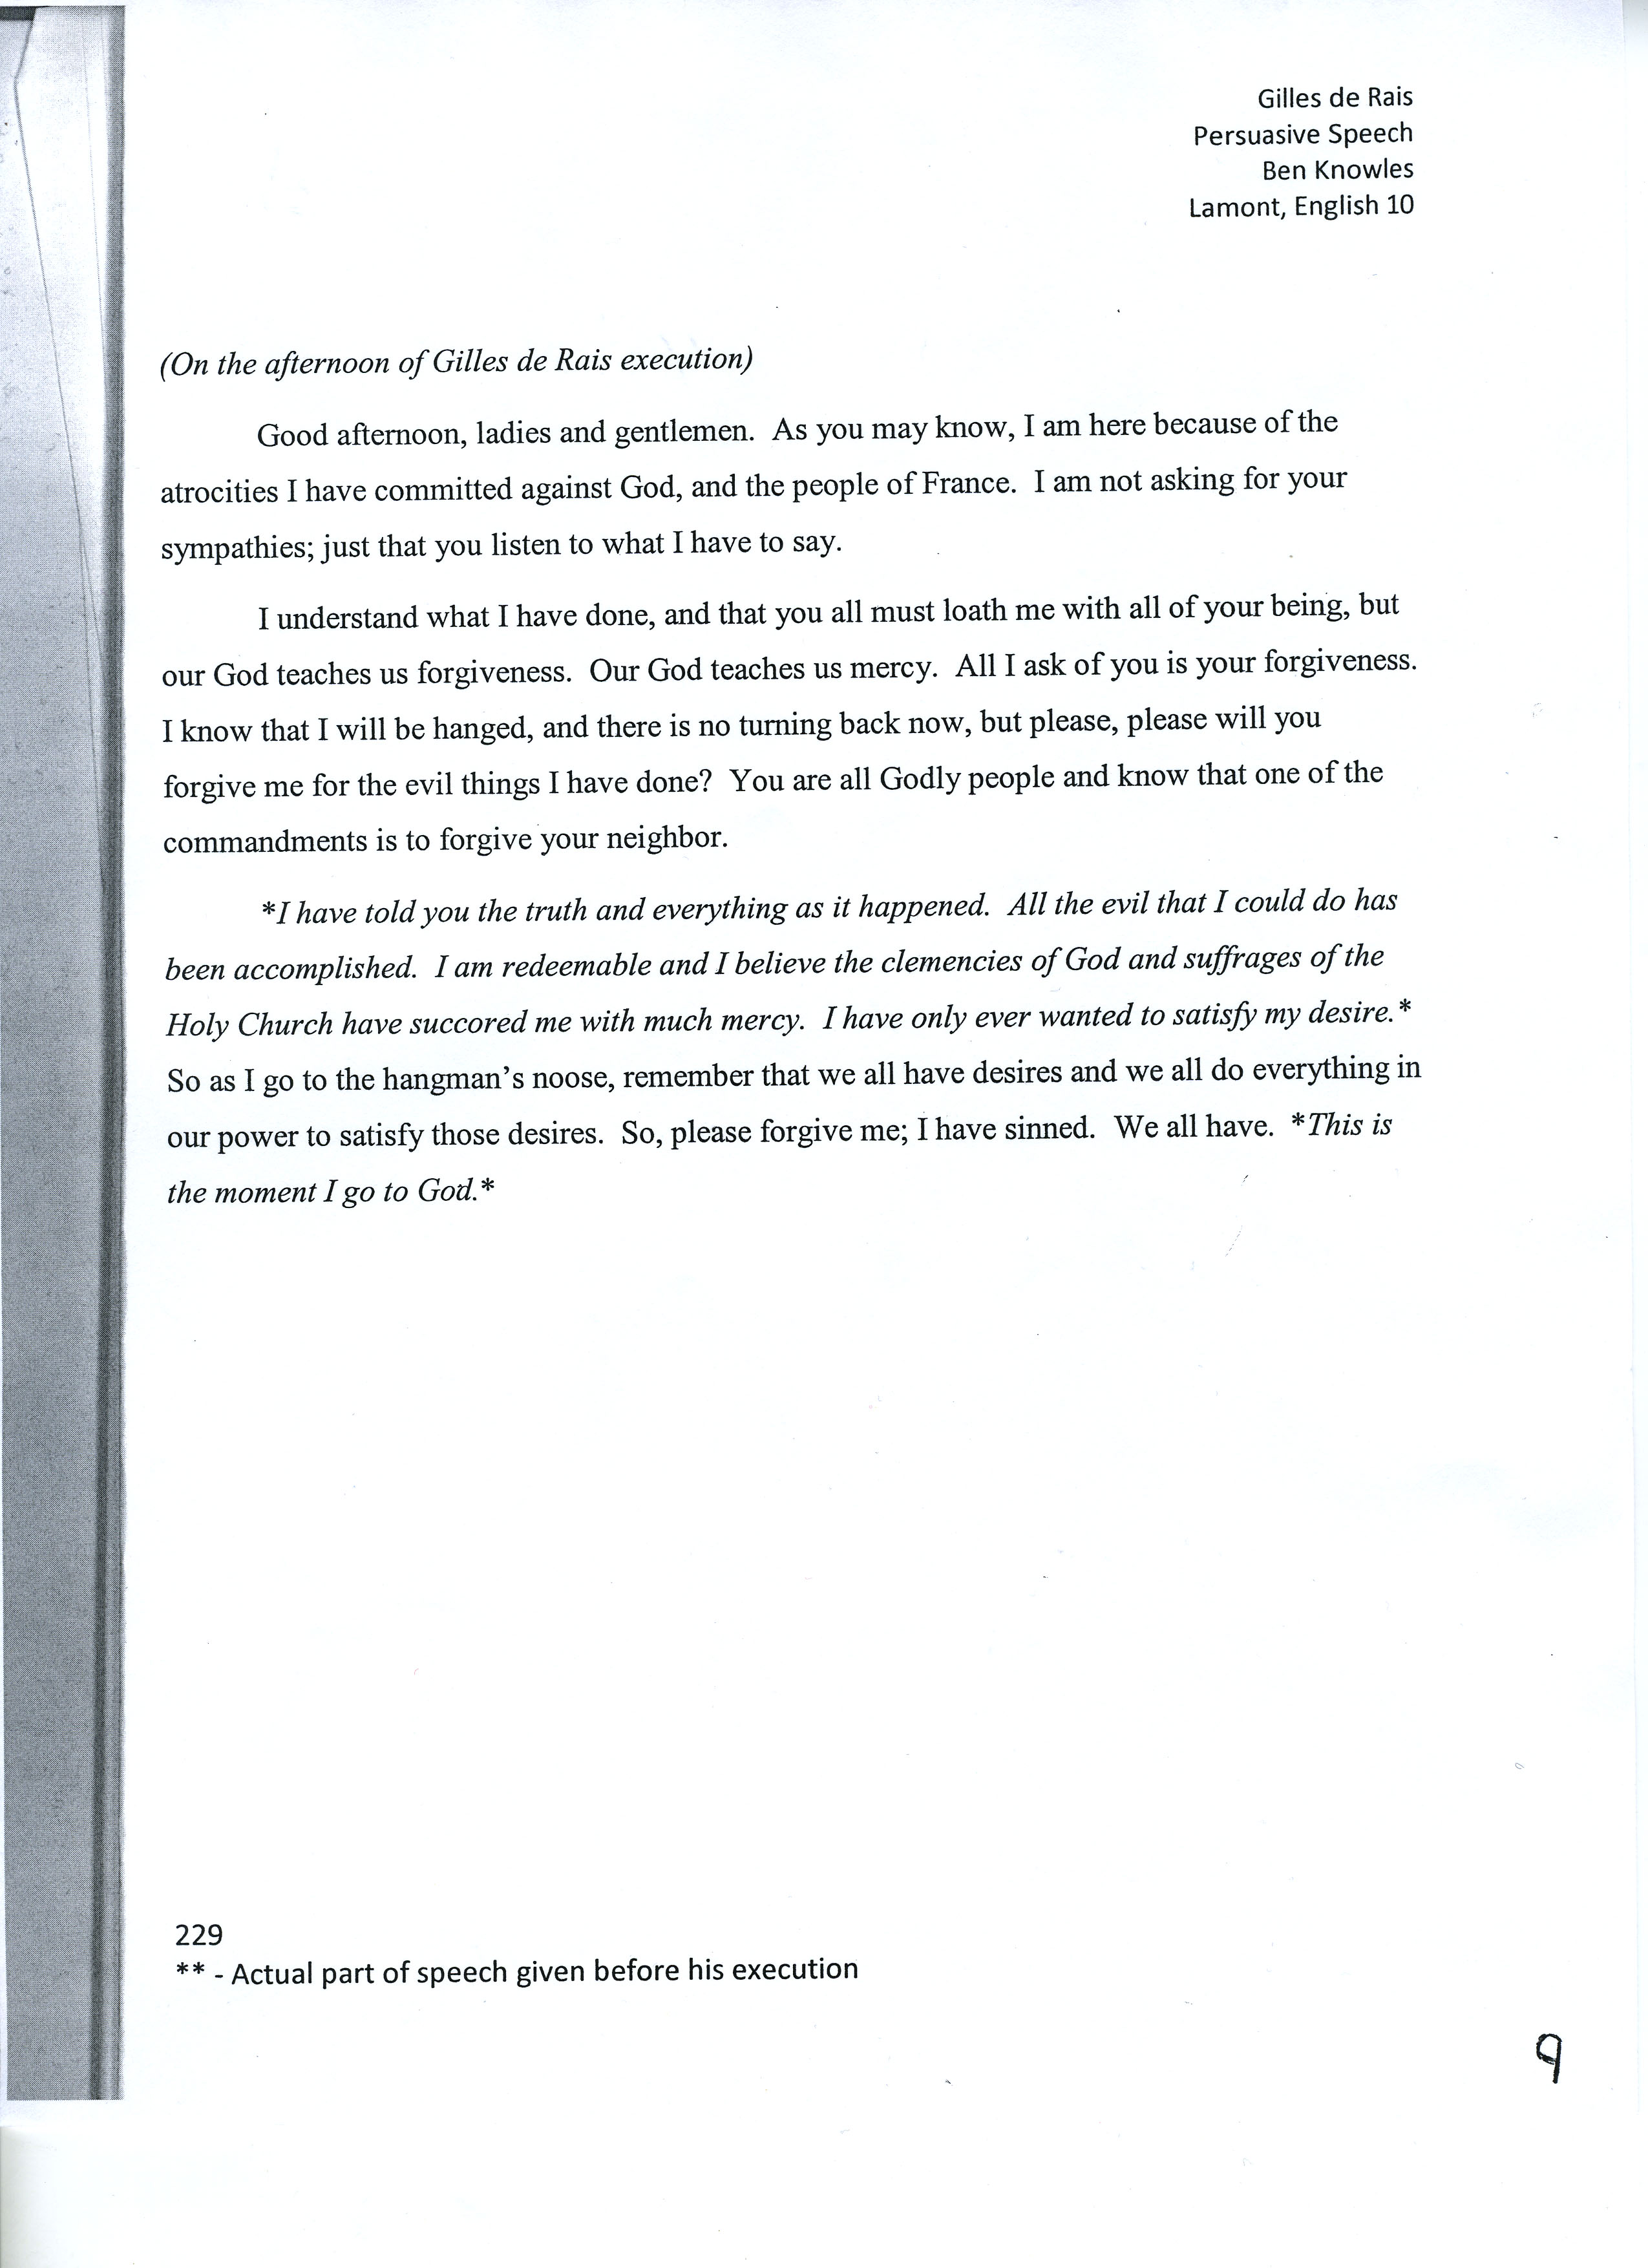 essay on patriotism in english for class 10 Essay on patriotism in english for class 10 9 hecompk, love for pakistan country essay on patriotism in english for class 10 9 8 7 and 6 and 1st 2nd year greater then.